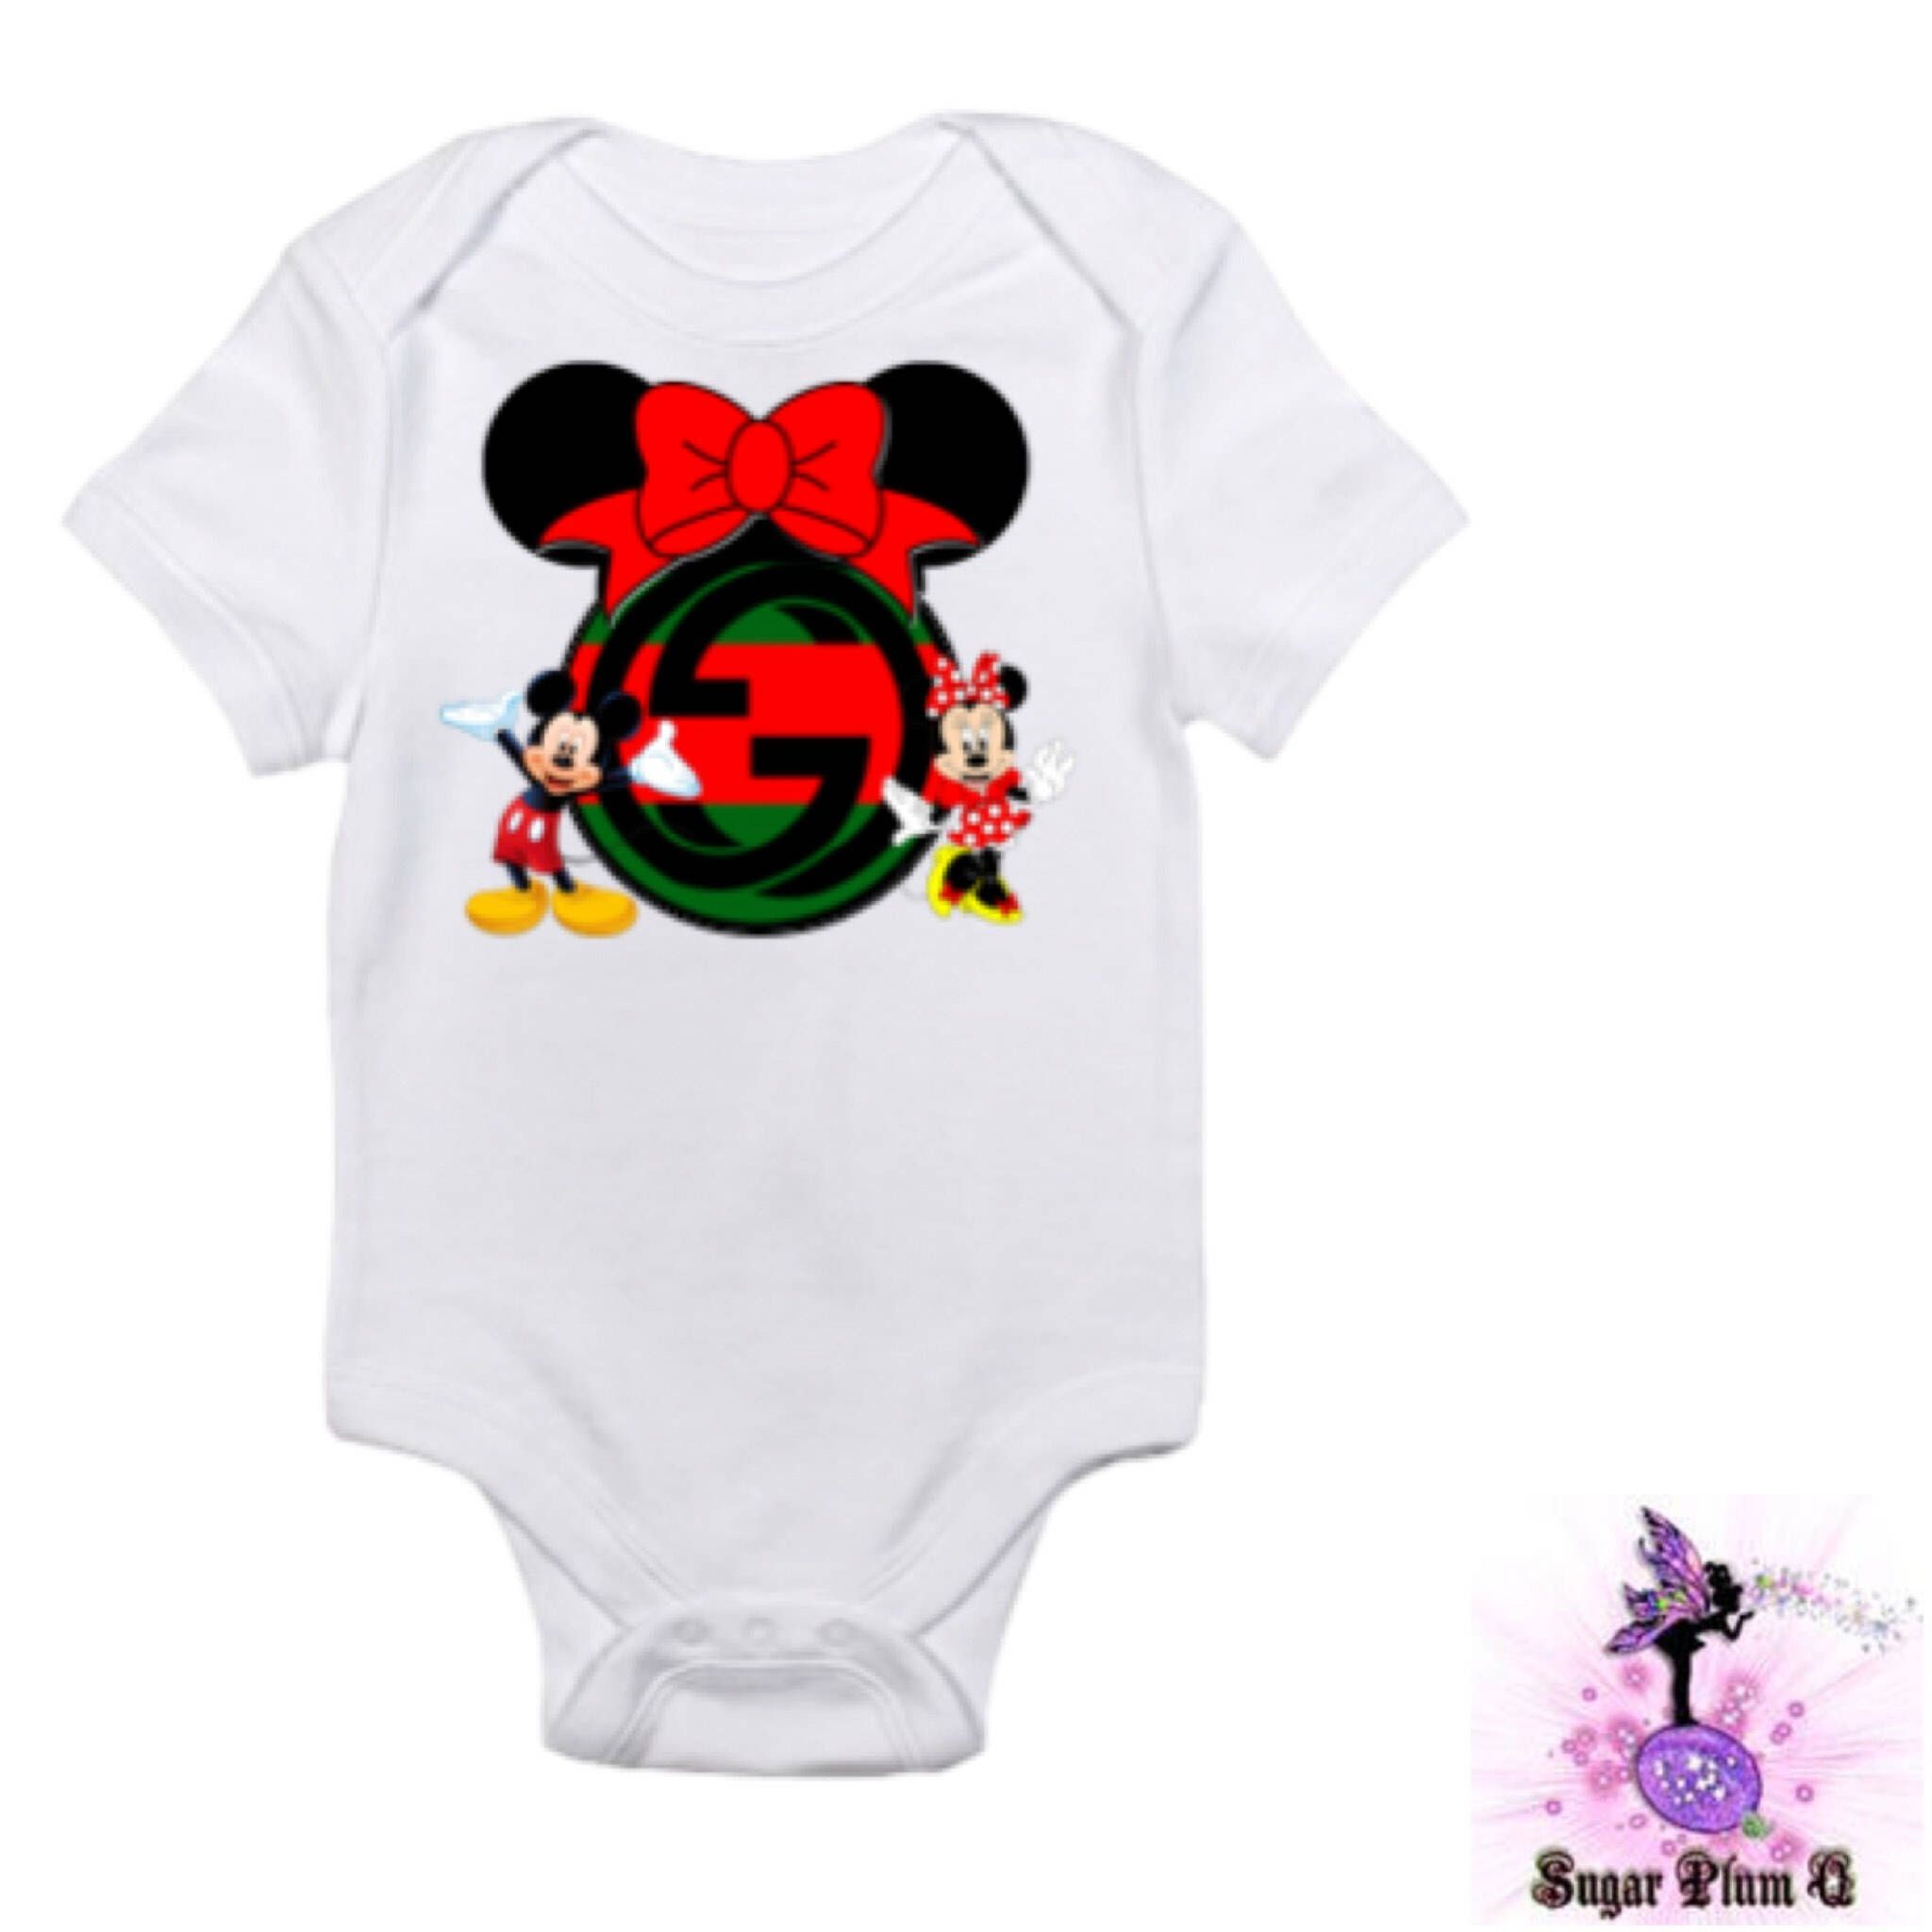 8270e3a8ad5 Designer inspired Red and Green Gucci Mickey Mouse and Minnie Mouse baby  onesie babyshower gift first